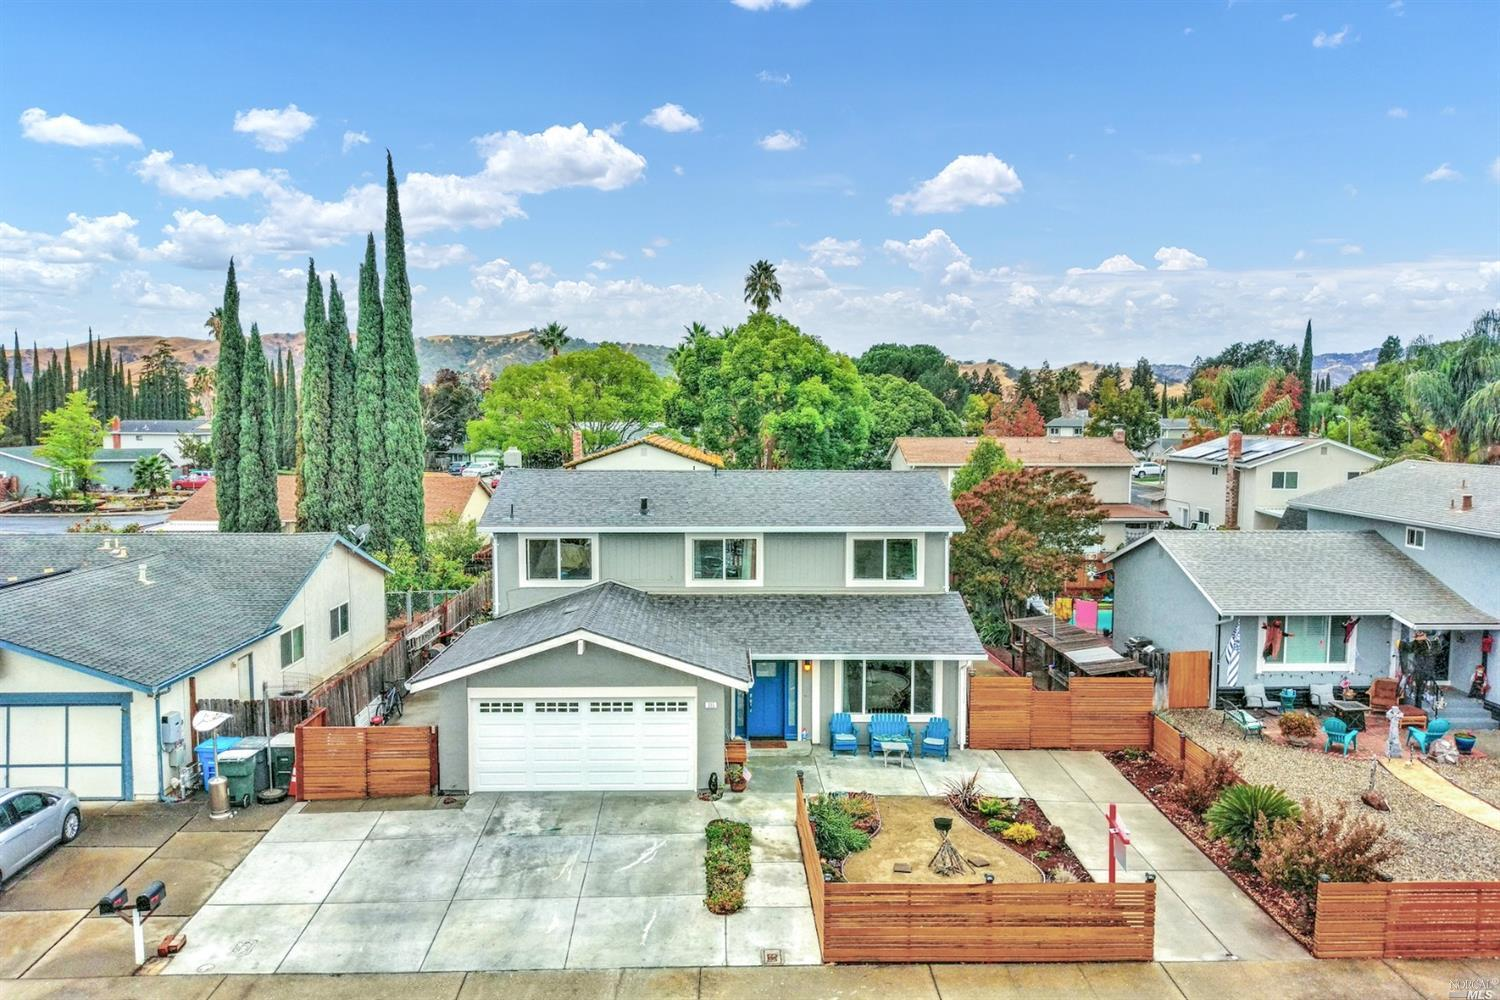 Whoa honey!! This is it, Call the agent. 4 Bedrooms walking distance to a k-8 school, shopping and r